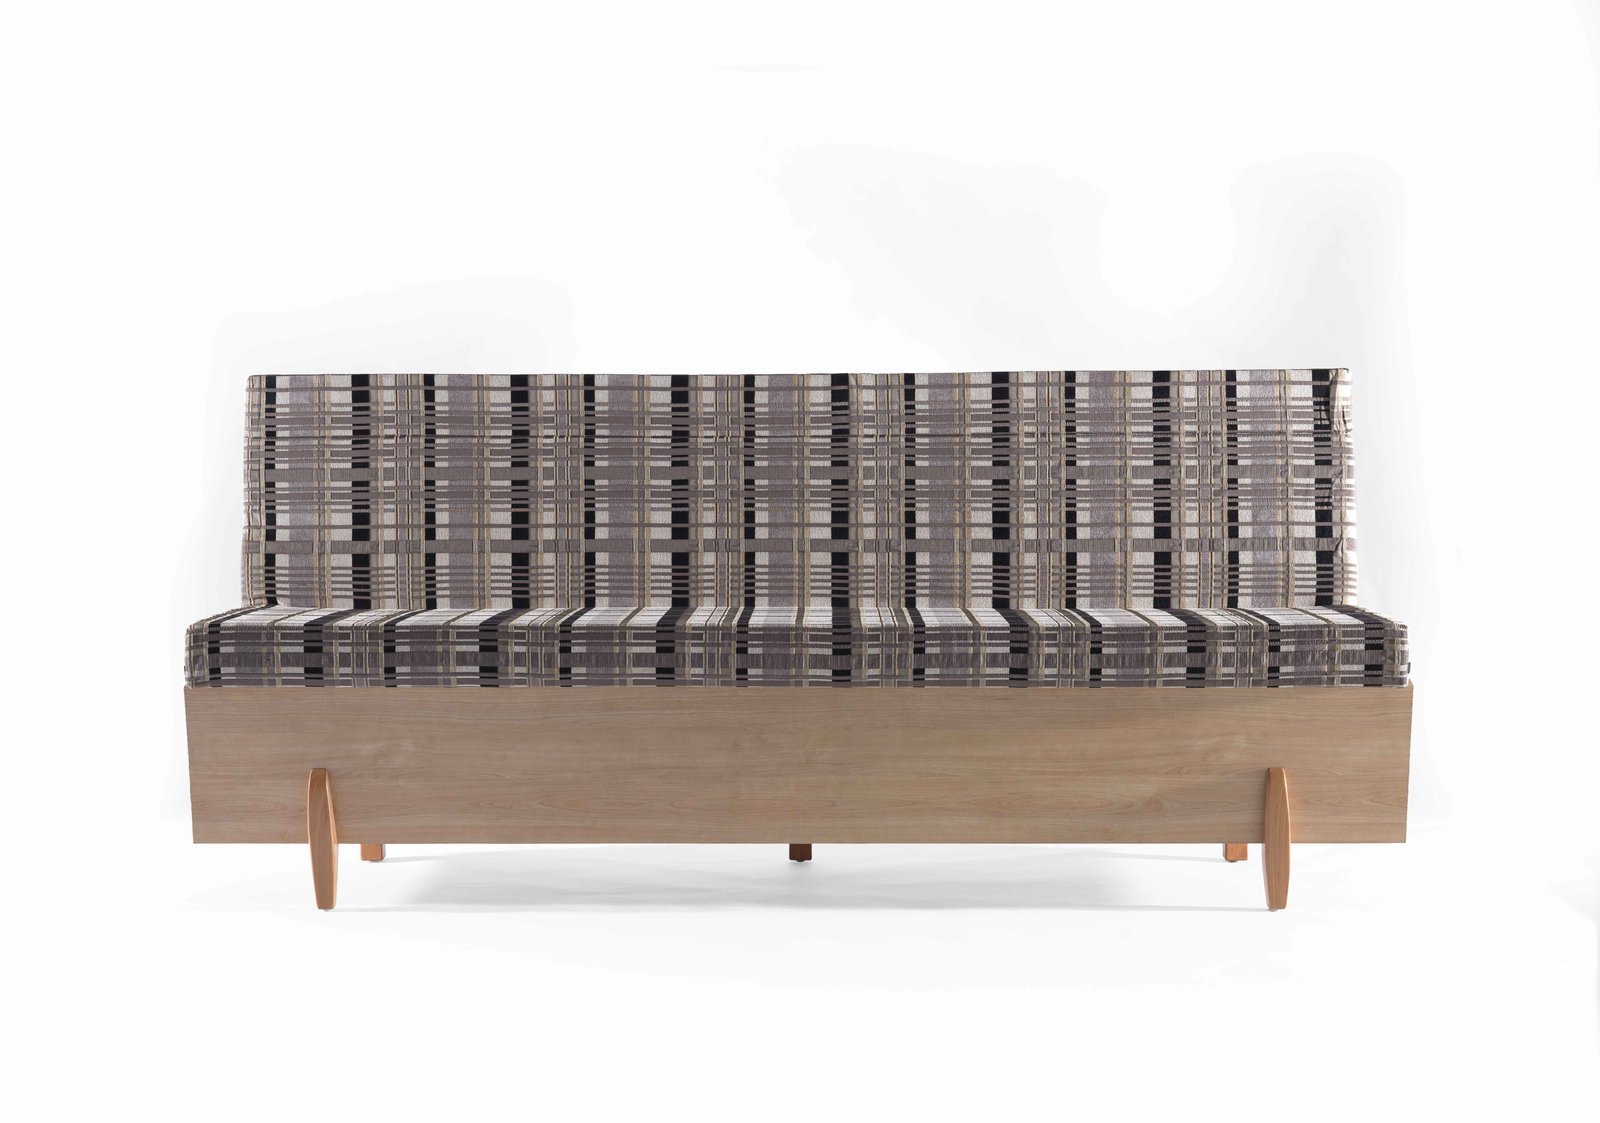 """The Safsalit was invented by a Jewish immigrant from Romania named Moshe Pitaro, who worked as an upholsterer,"" says Snyder. ""In 1962, he created his very first design: an intelligent and innovative sofa that could be converted into a bed, which responded to the practical needs of apartment life in Israel, where everyone lived in very modest quarters, with only fewer than 10% of all apartments having more than four rooms.""  This is What Design Looked Like in Israel in 1965 by Allie Weiss"